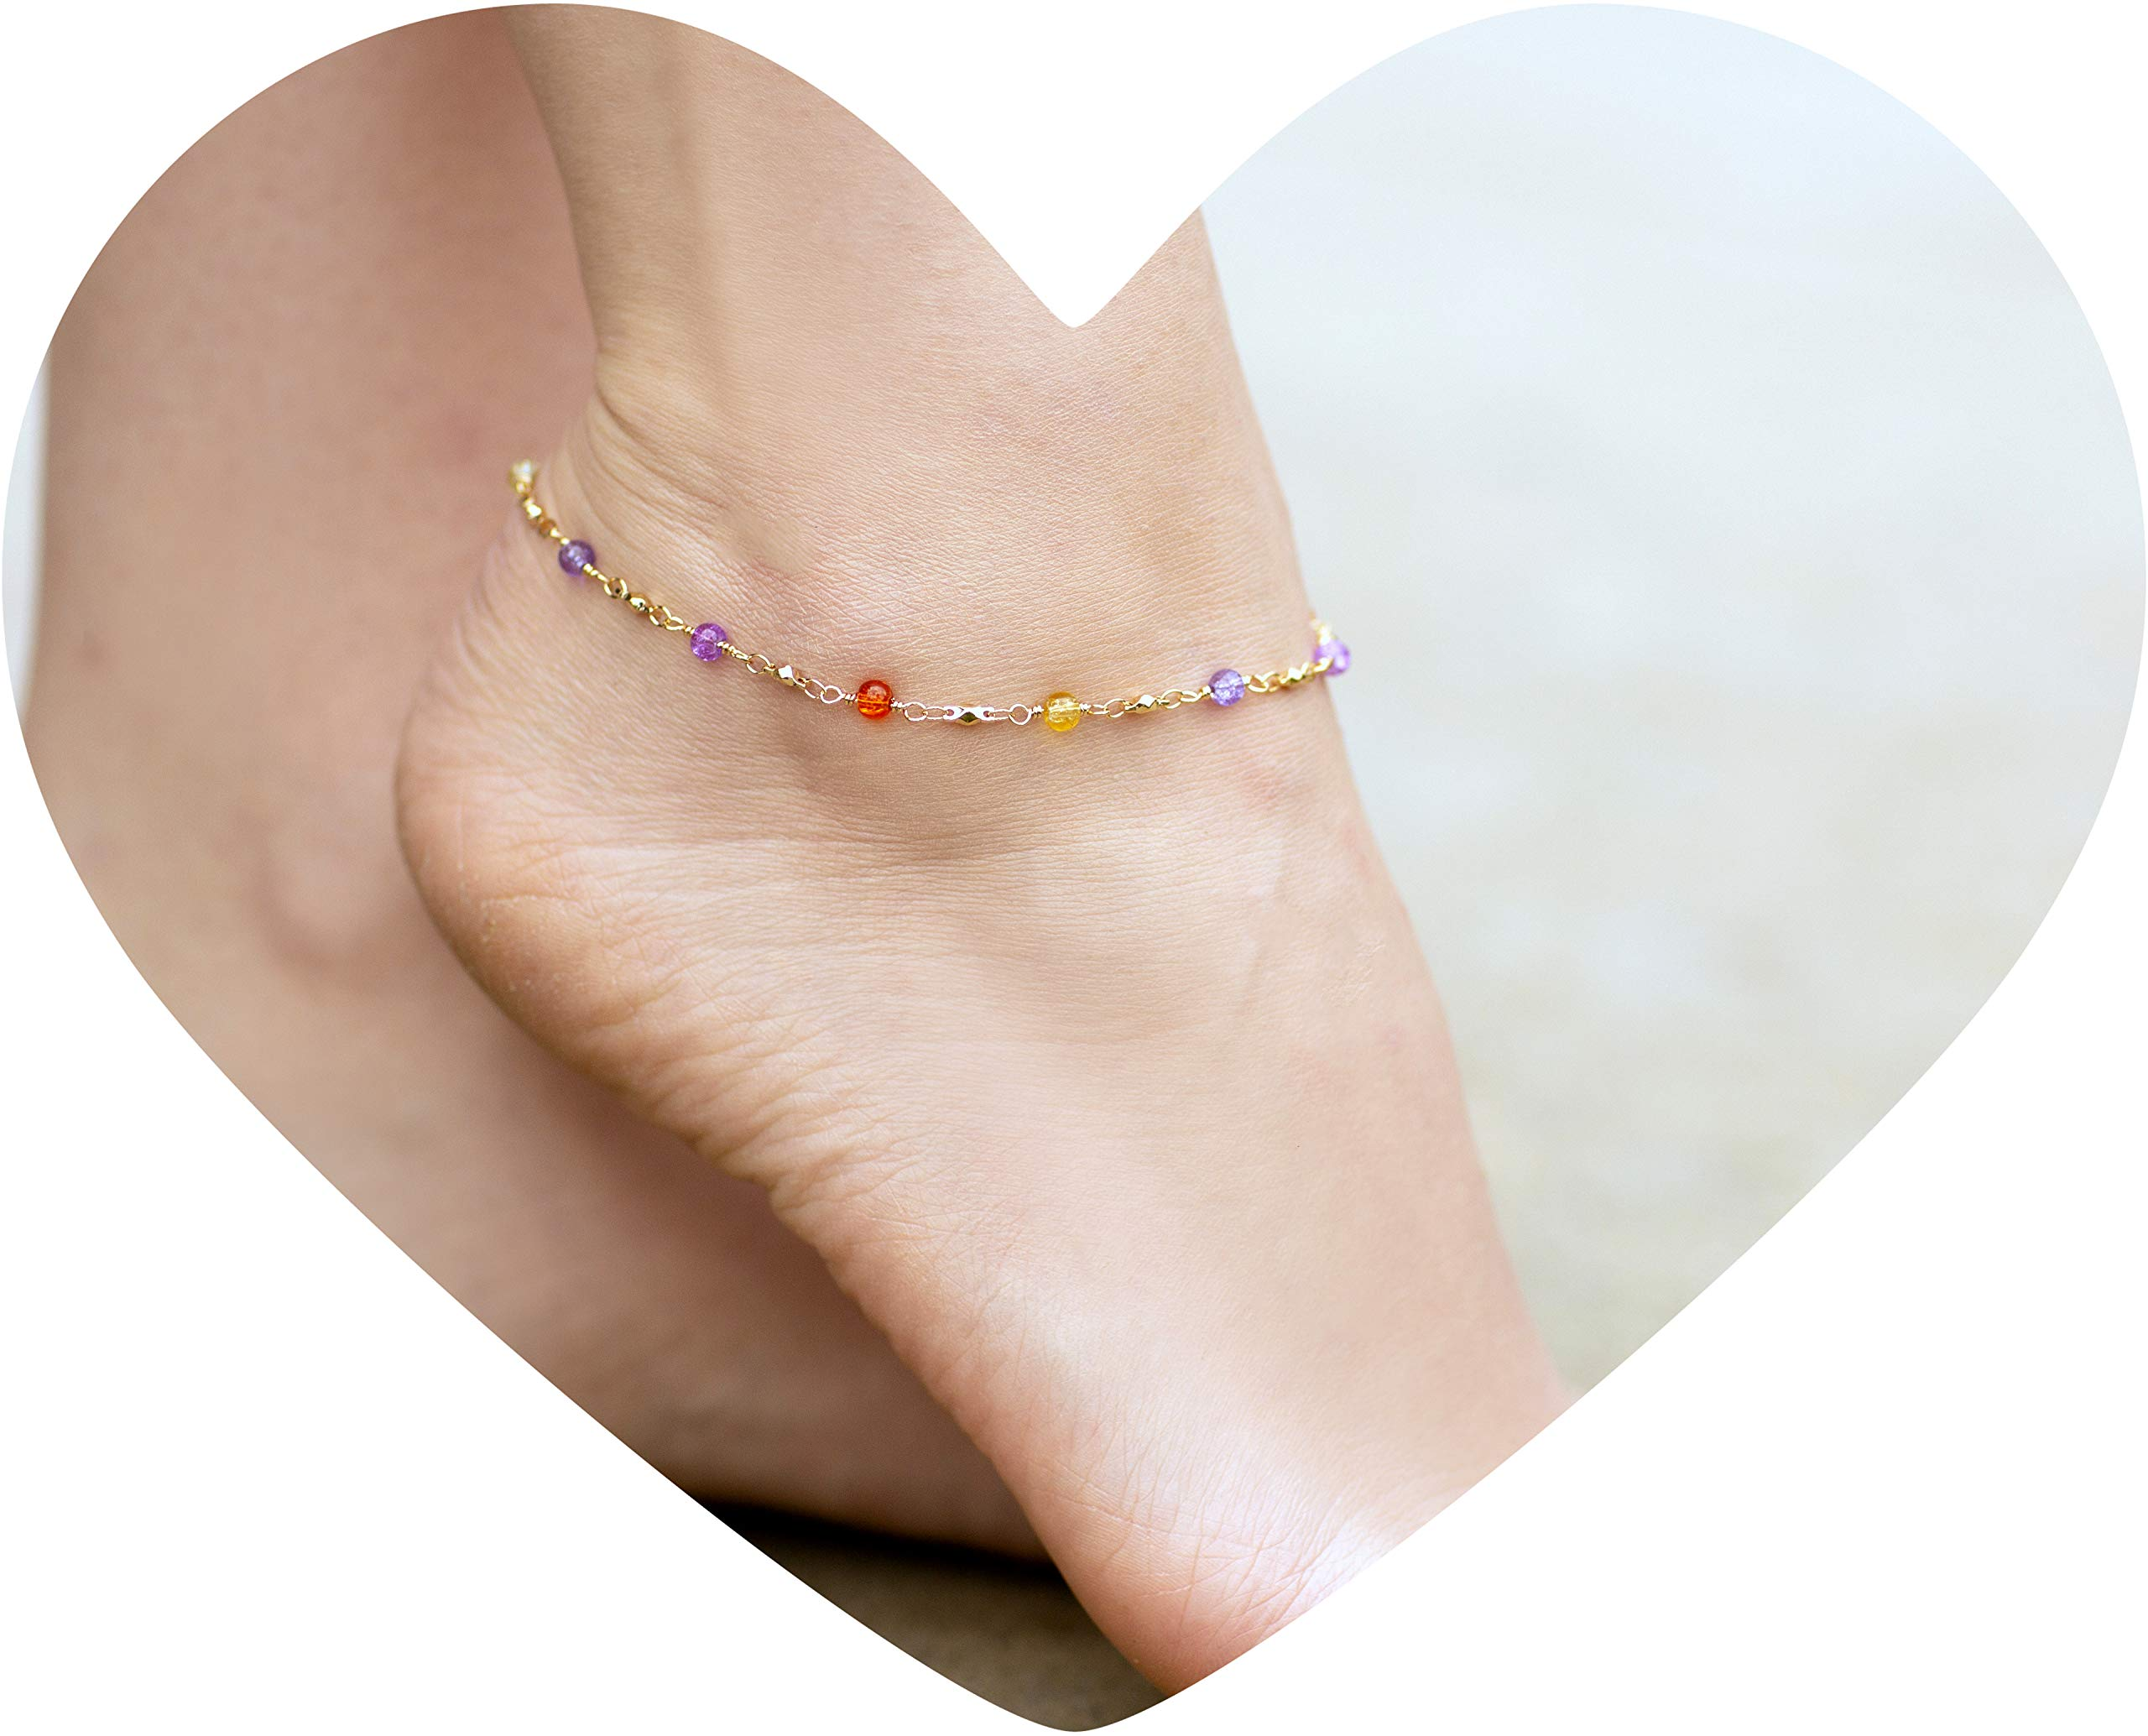 Lifetime Jewelry Ankle Bracelets for Women & Teen Girls [ Durable & Cute Colorful Balls Gold Anklet ] up to 20x More 24k Plating Than Other Foot Jewelry - Lifetime Replacement Guarantee (11.0) by Lifetime Jewelry (Image #2)